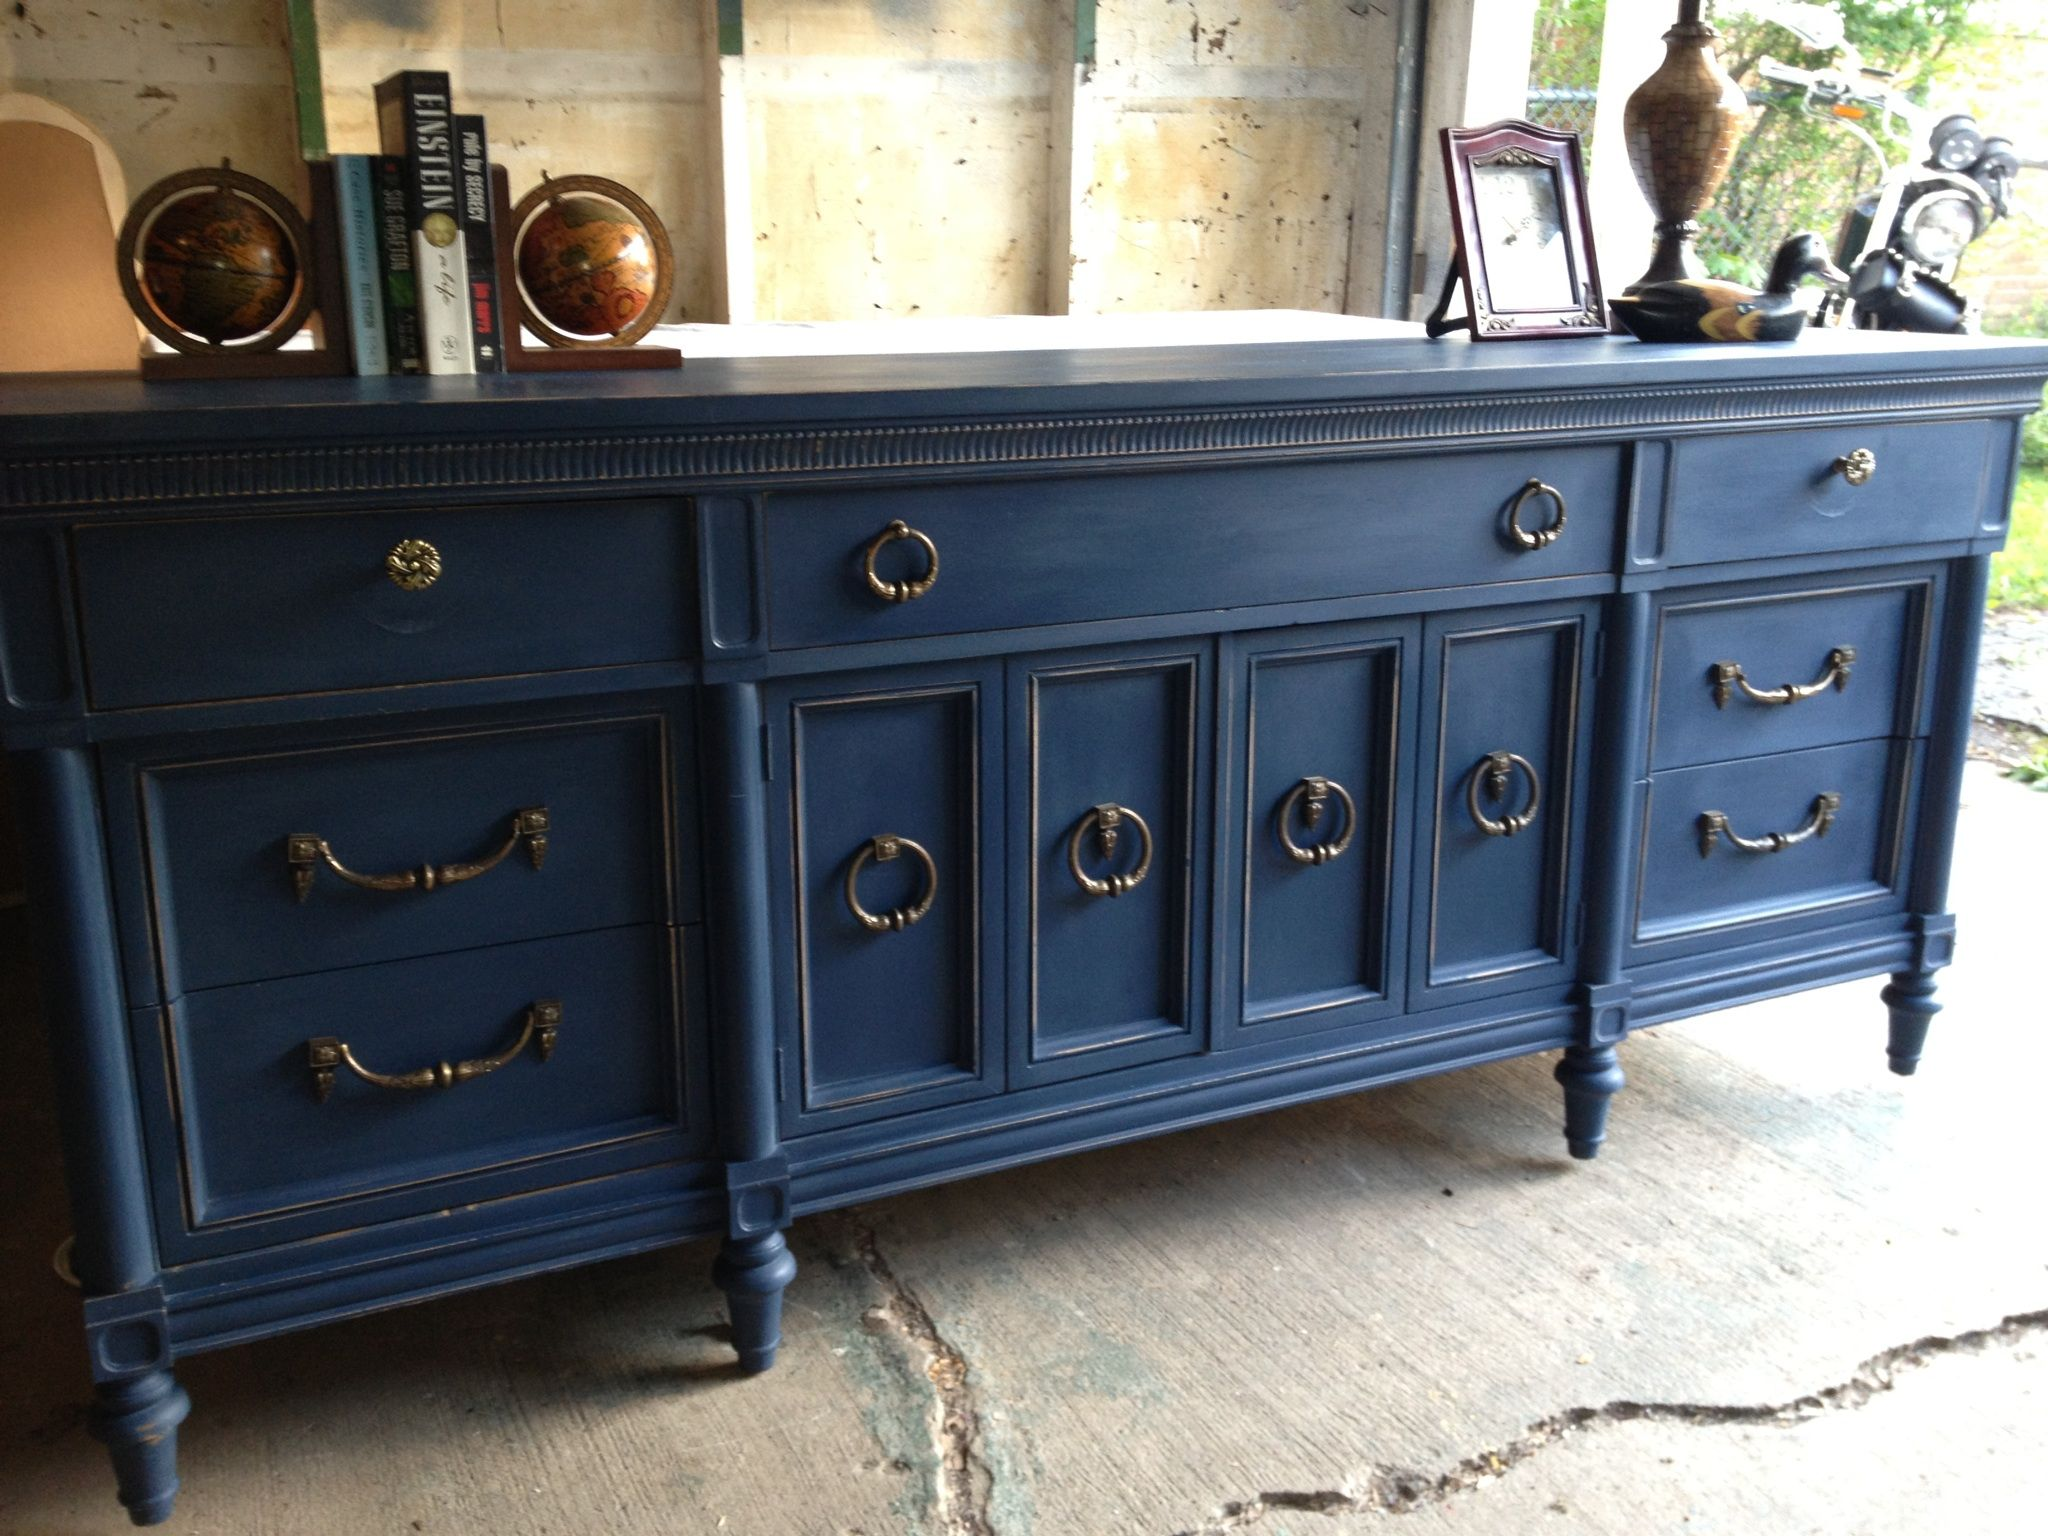 dark blue sofa table how to remove dye stain from leather navy painted vintage dresser by twice loved furniture